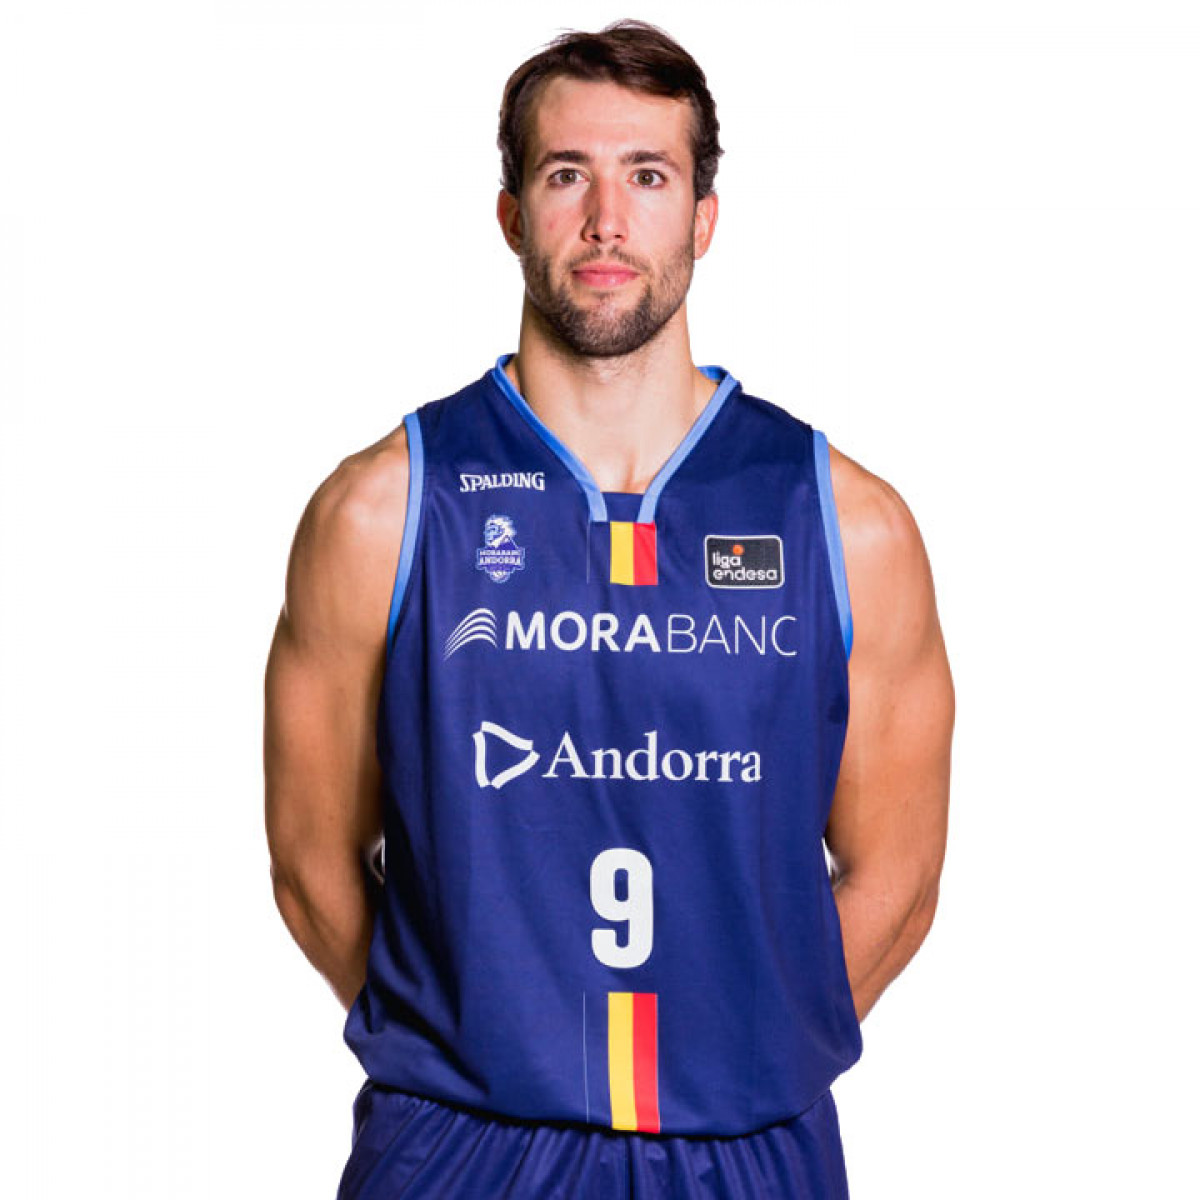 Photo of Ignacio Llovet, 2019-2020 season